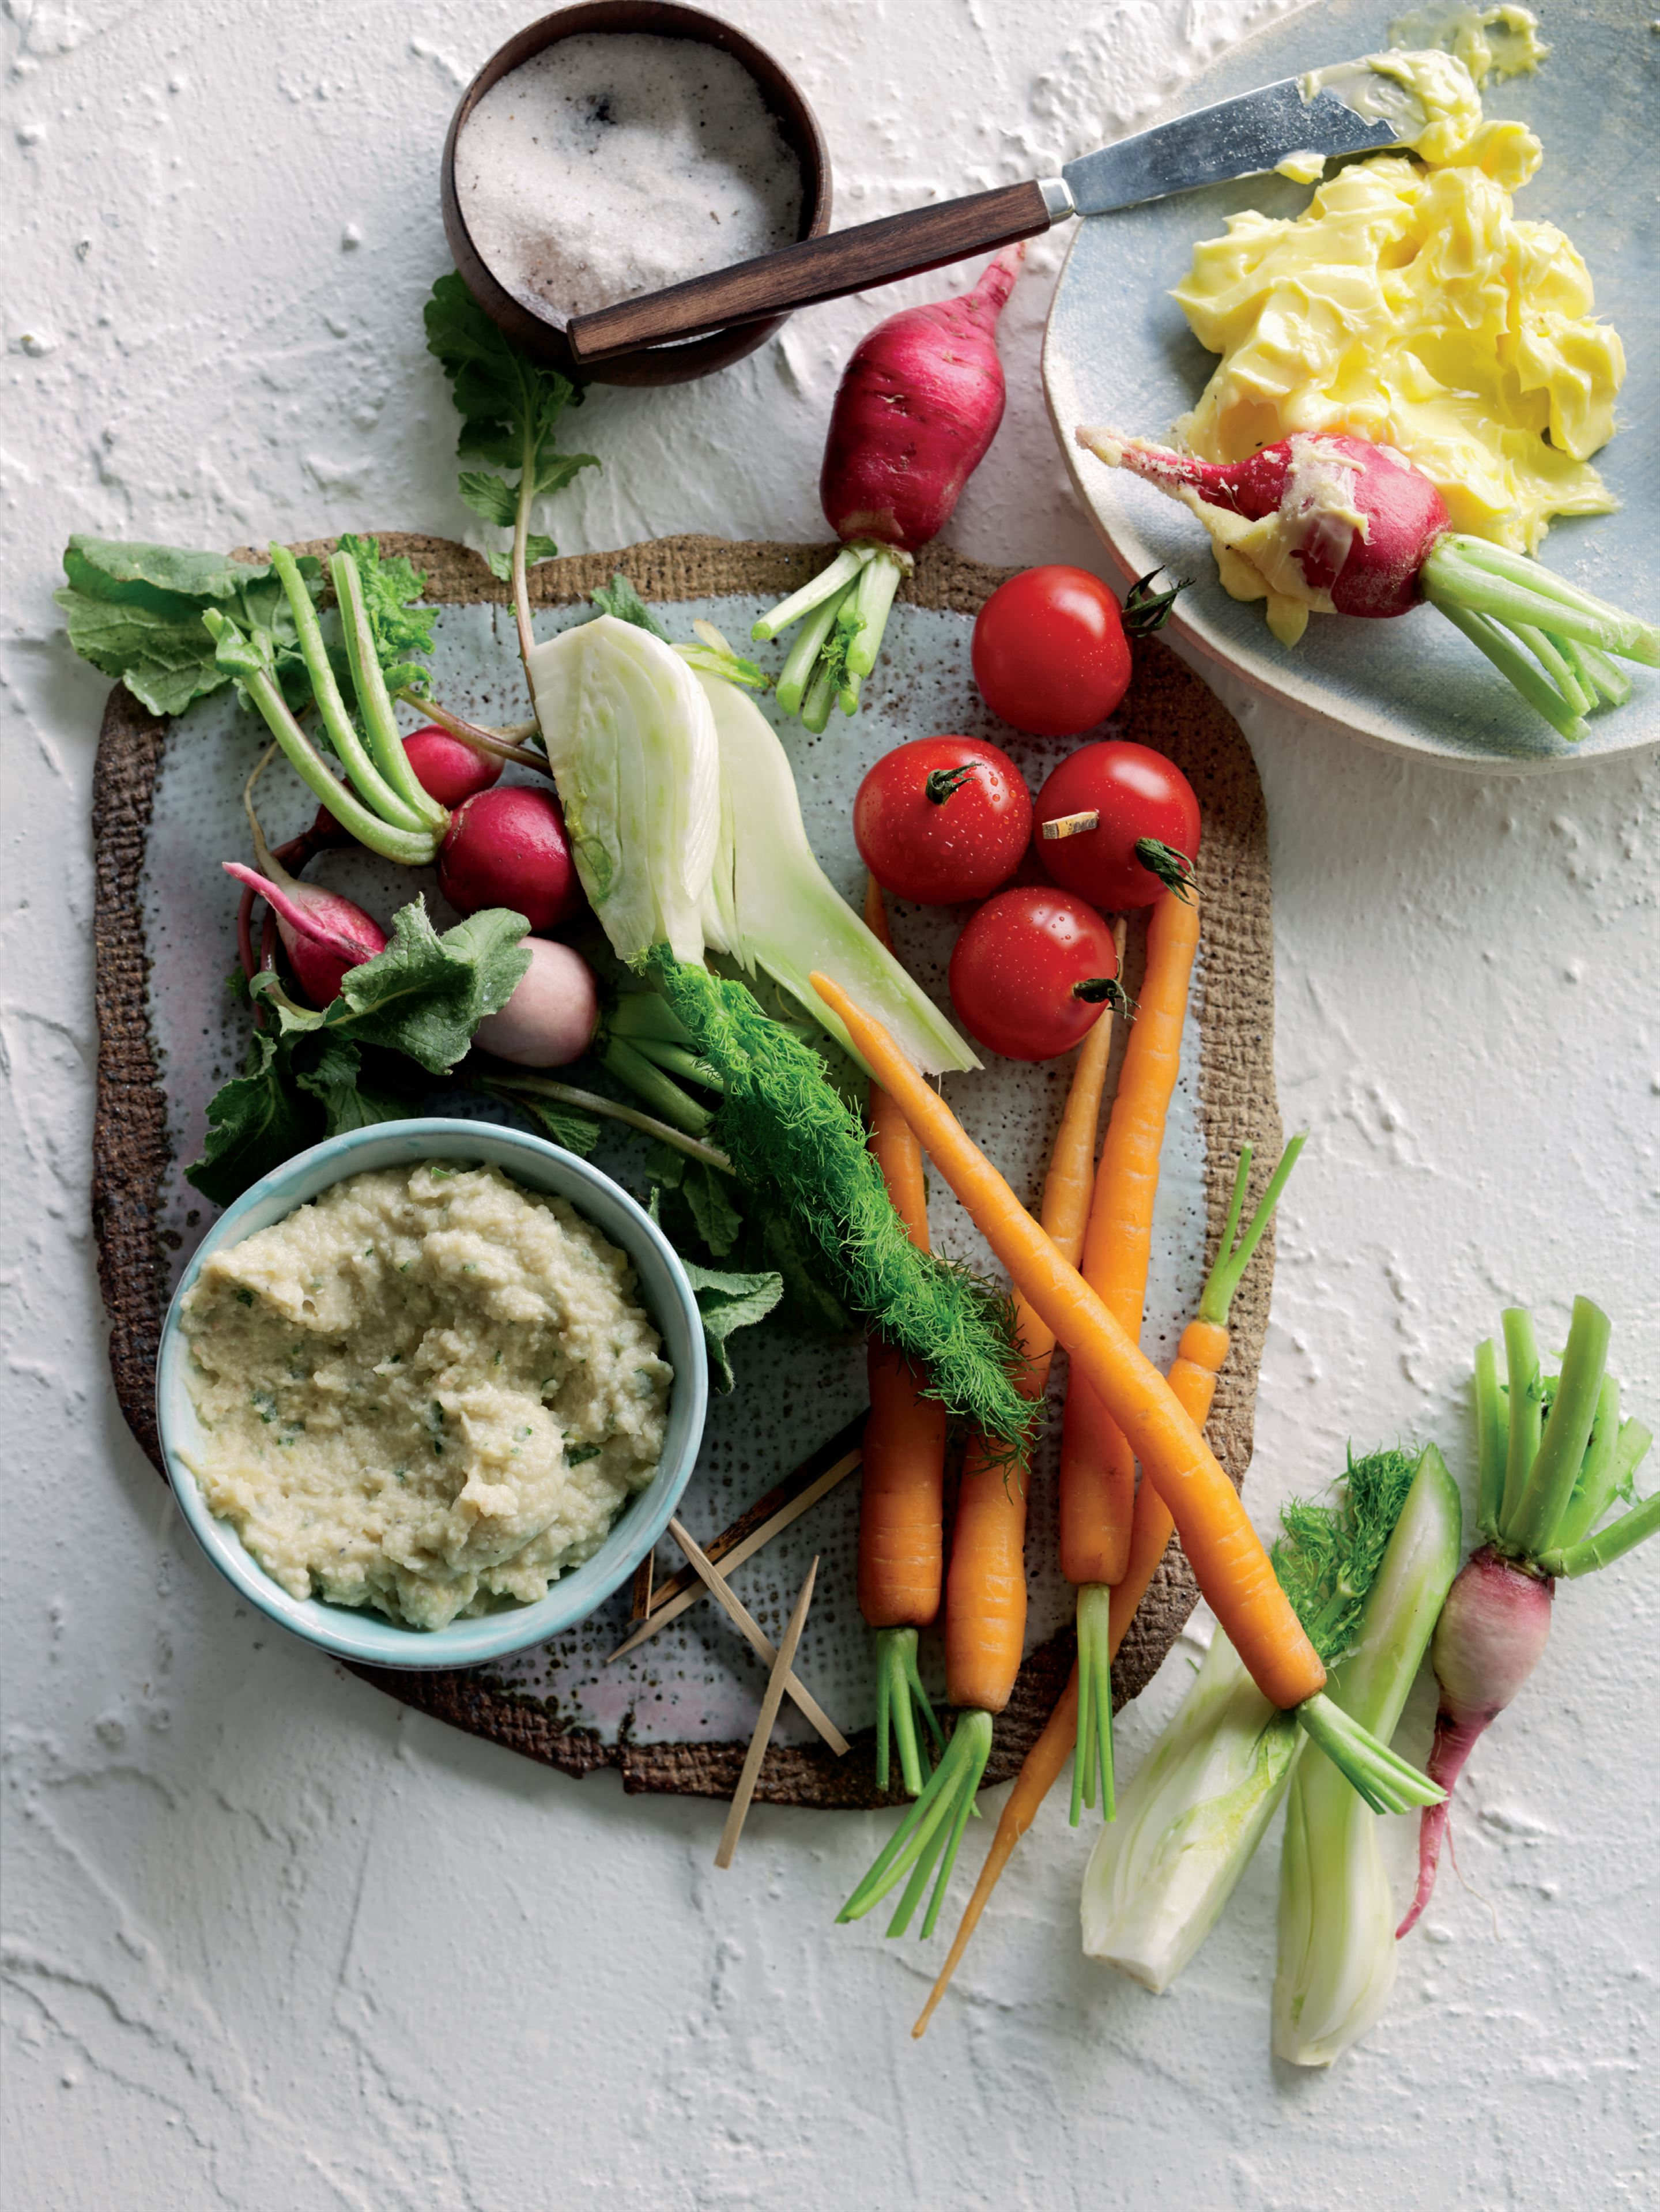 Cannellini bean, parmesan and artichoke dip with crudités